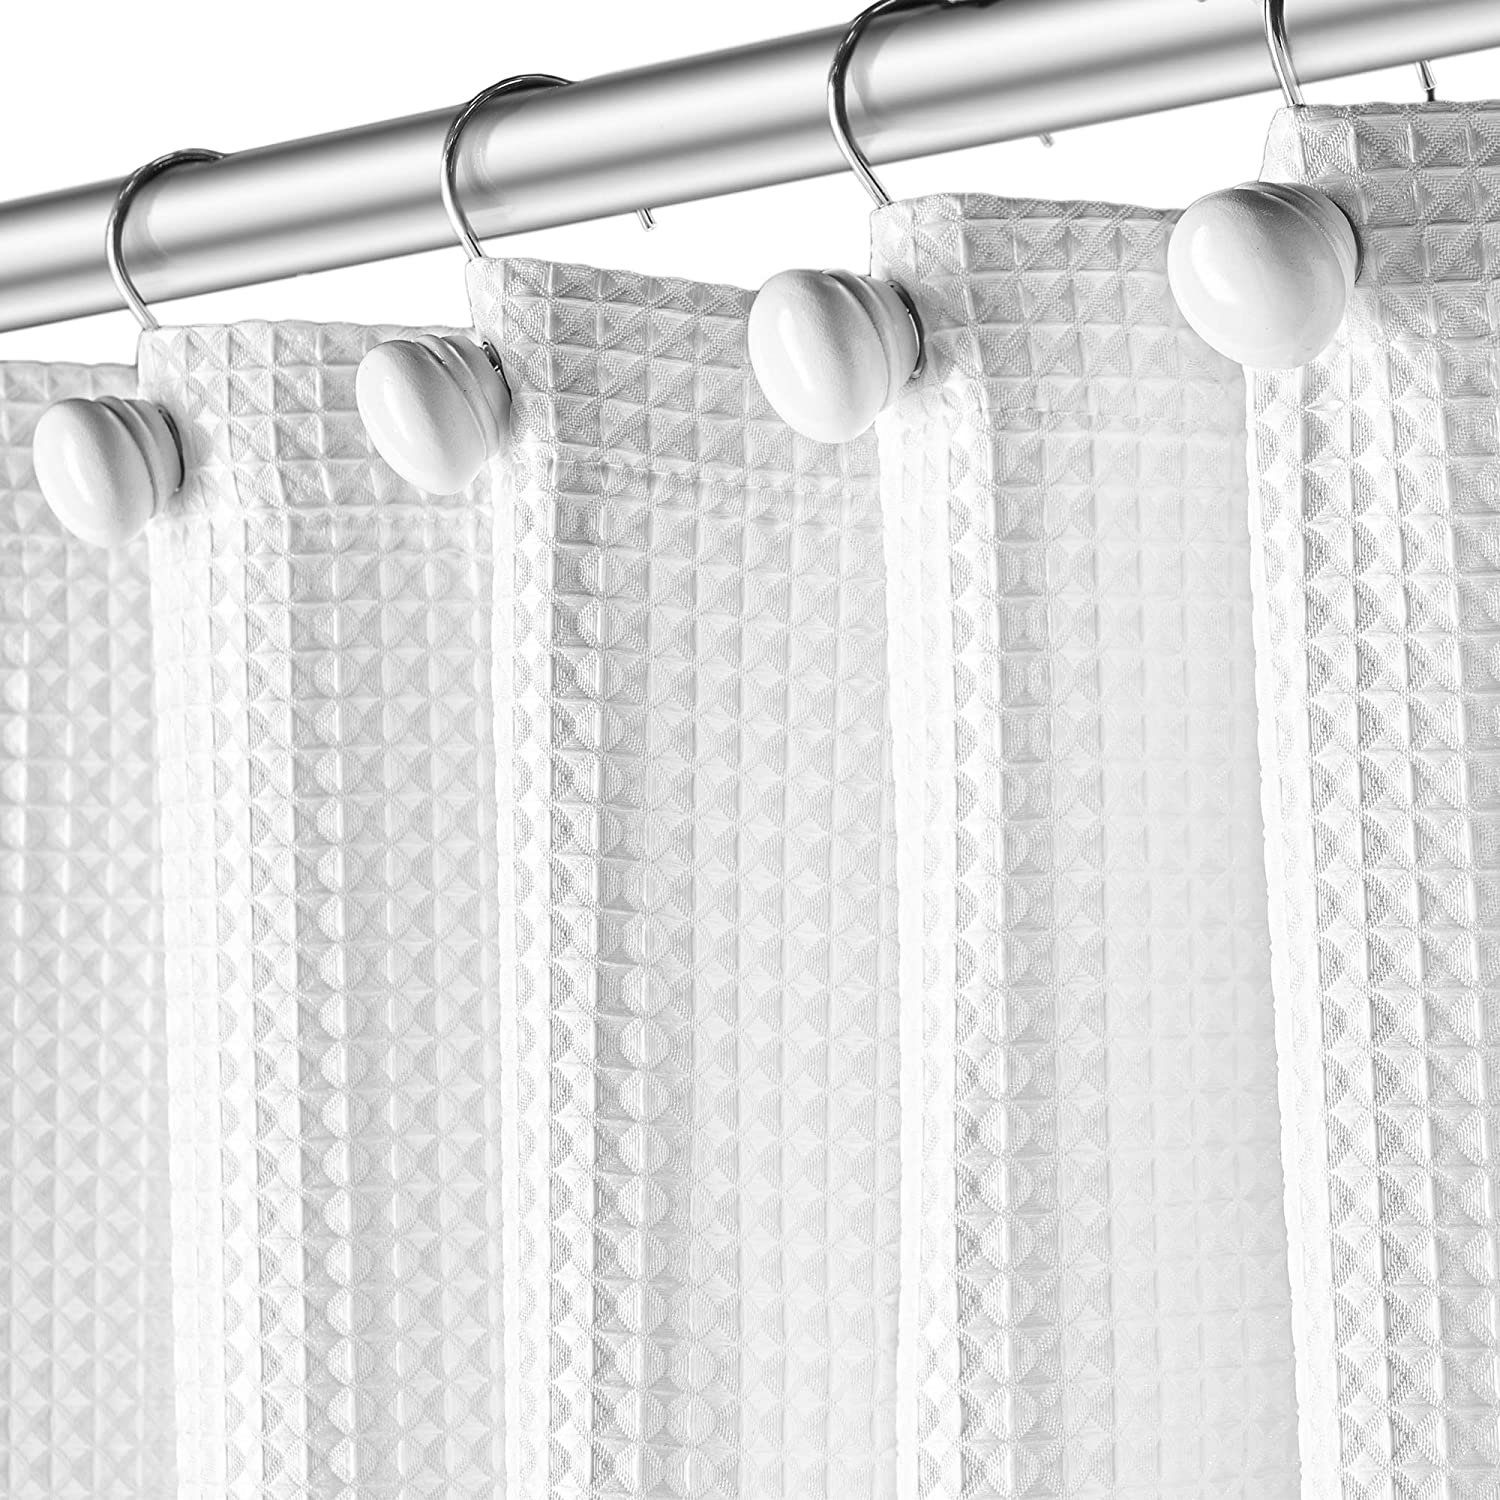 Creative Scents Shower Curtain Hooks - Set of 12 White Shower Rings for Bathroom Shower Curtain Rod - 100% Rust Proof (White): Home & Kitchen